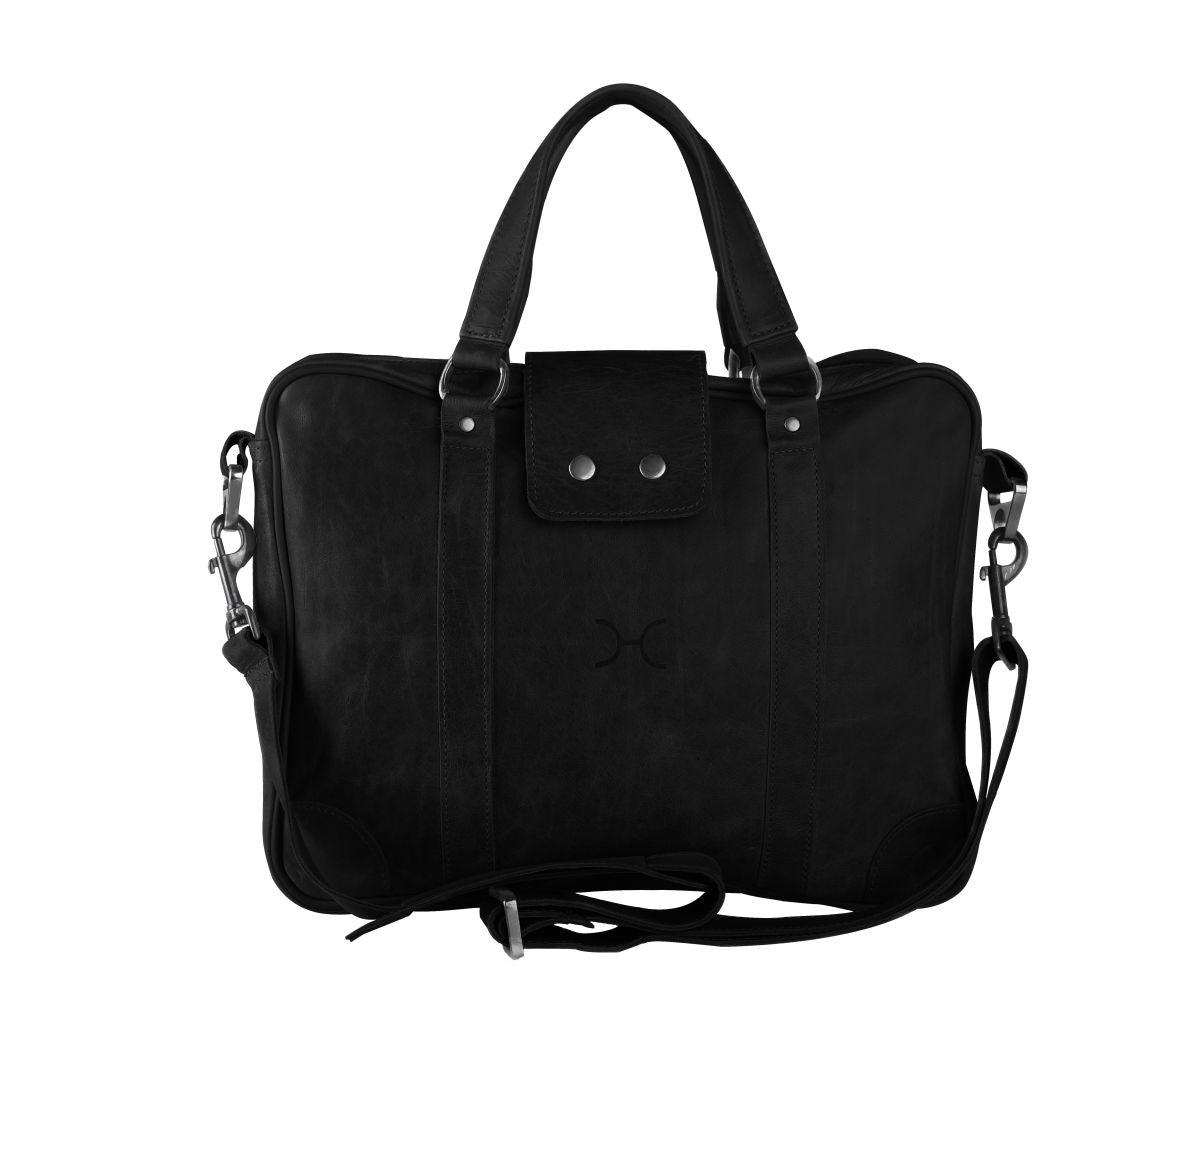 Thandana Laptop Bag - Black - Zufrique Boutique